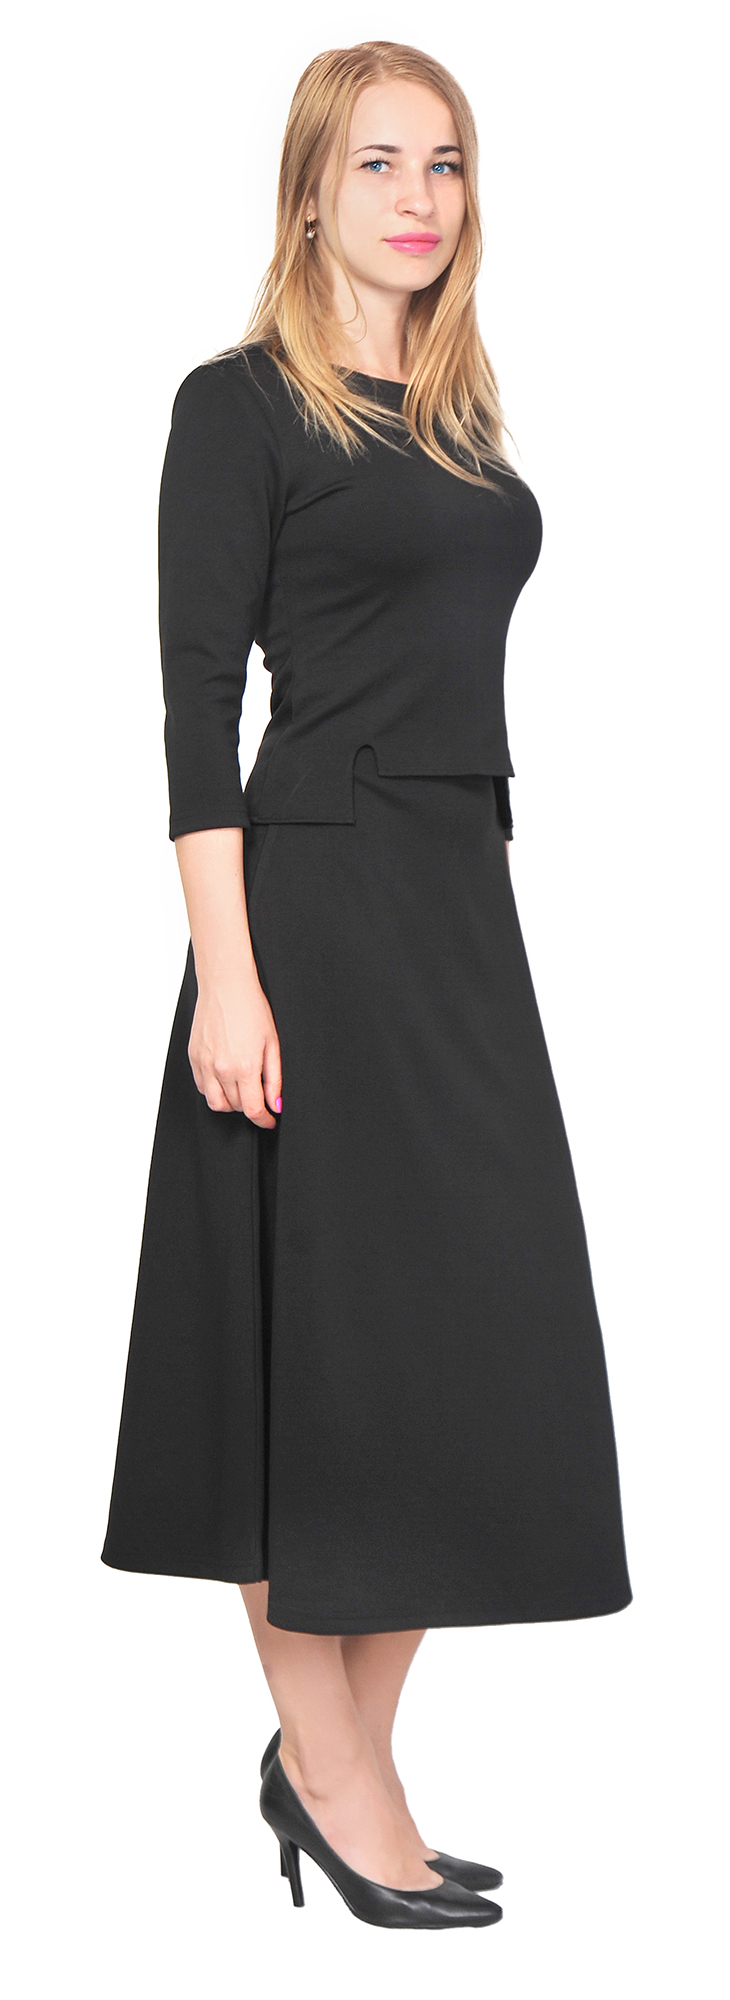 WOMEN'S TOP SHIRT A LINE MIDI SKIRT SUIT SET CASUAL OFFICE ...